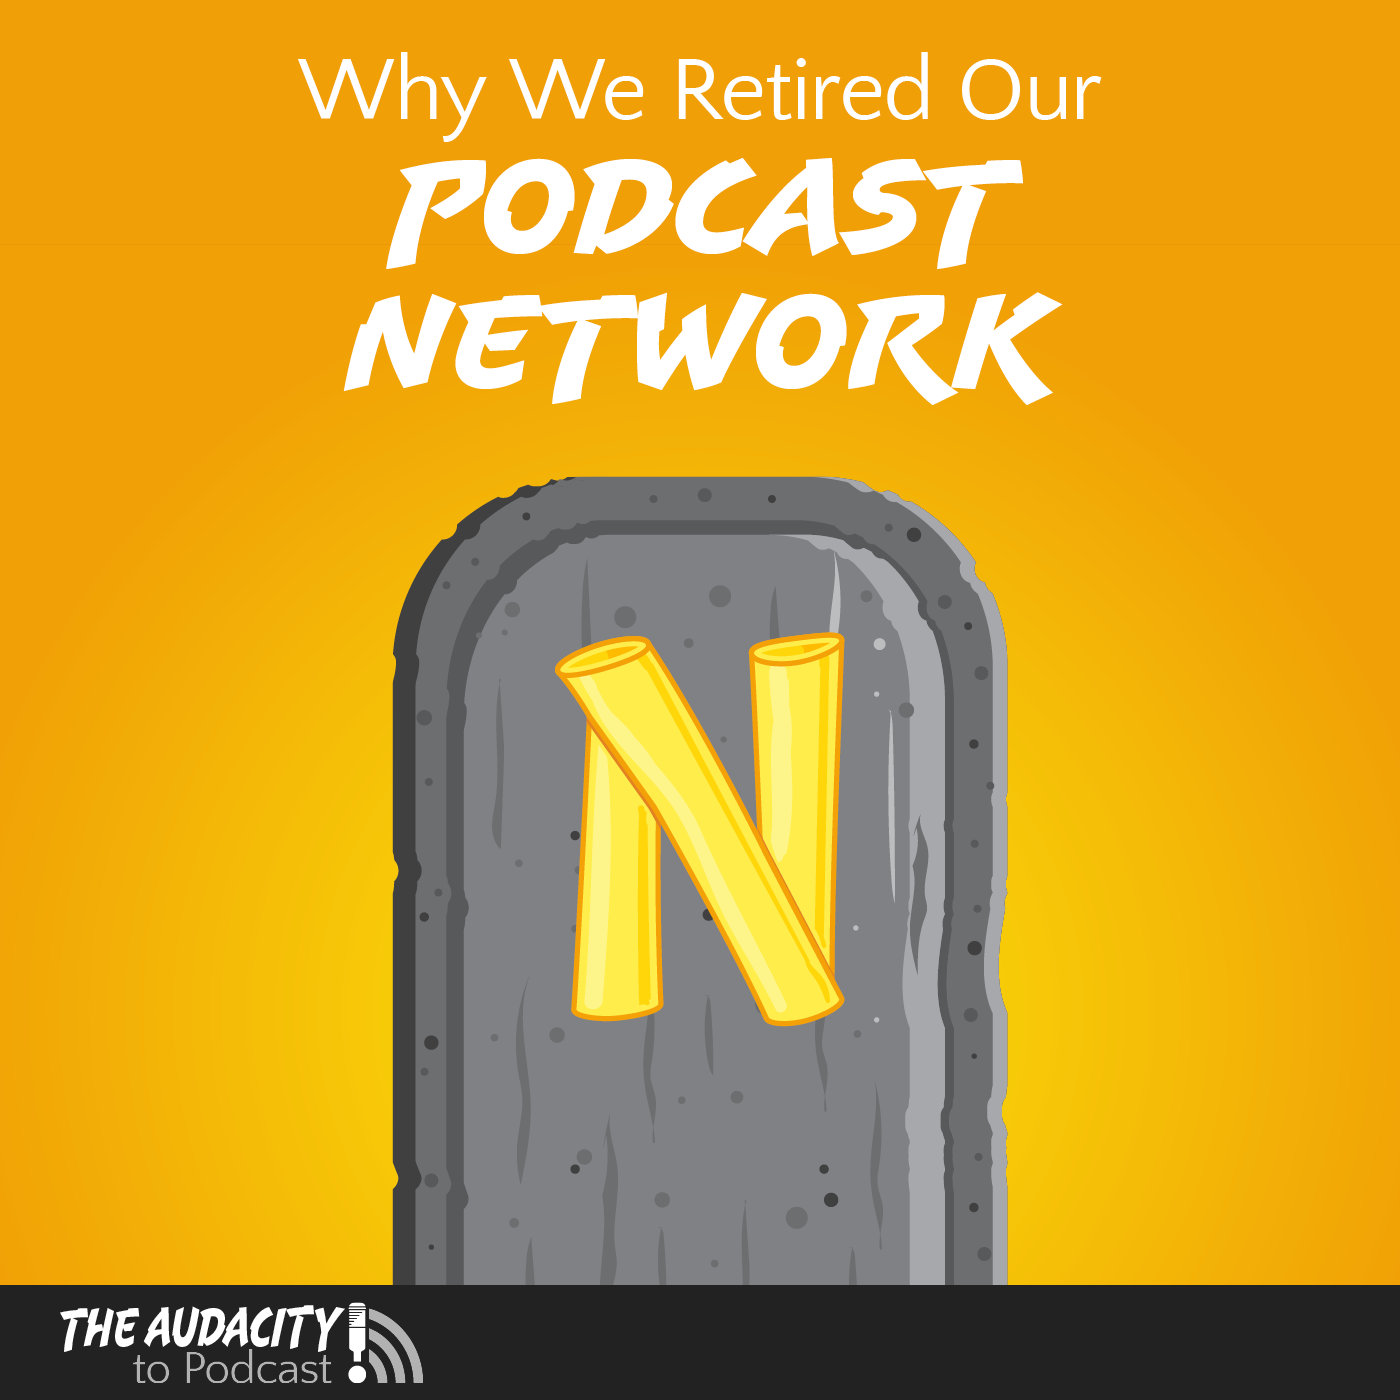 Why We Retired Our Podcast Network